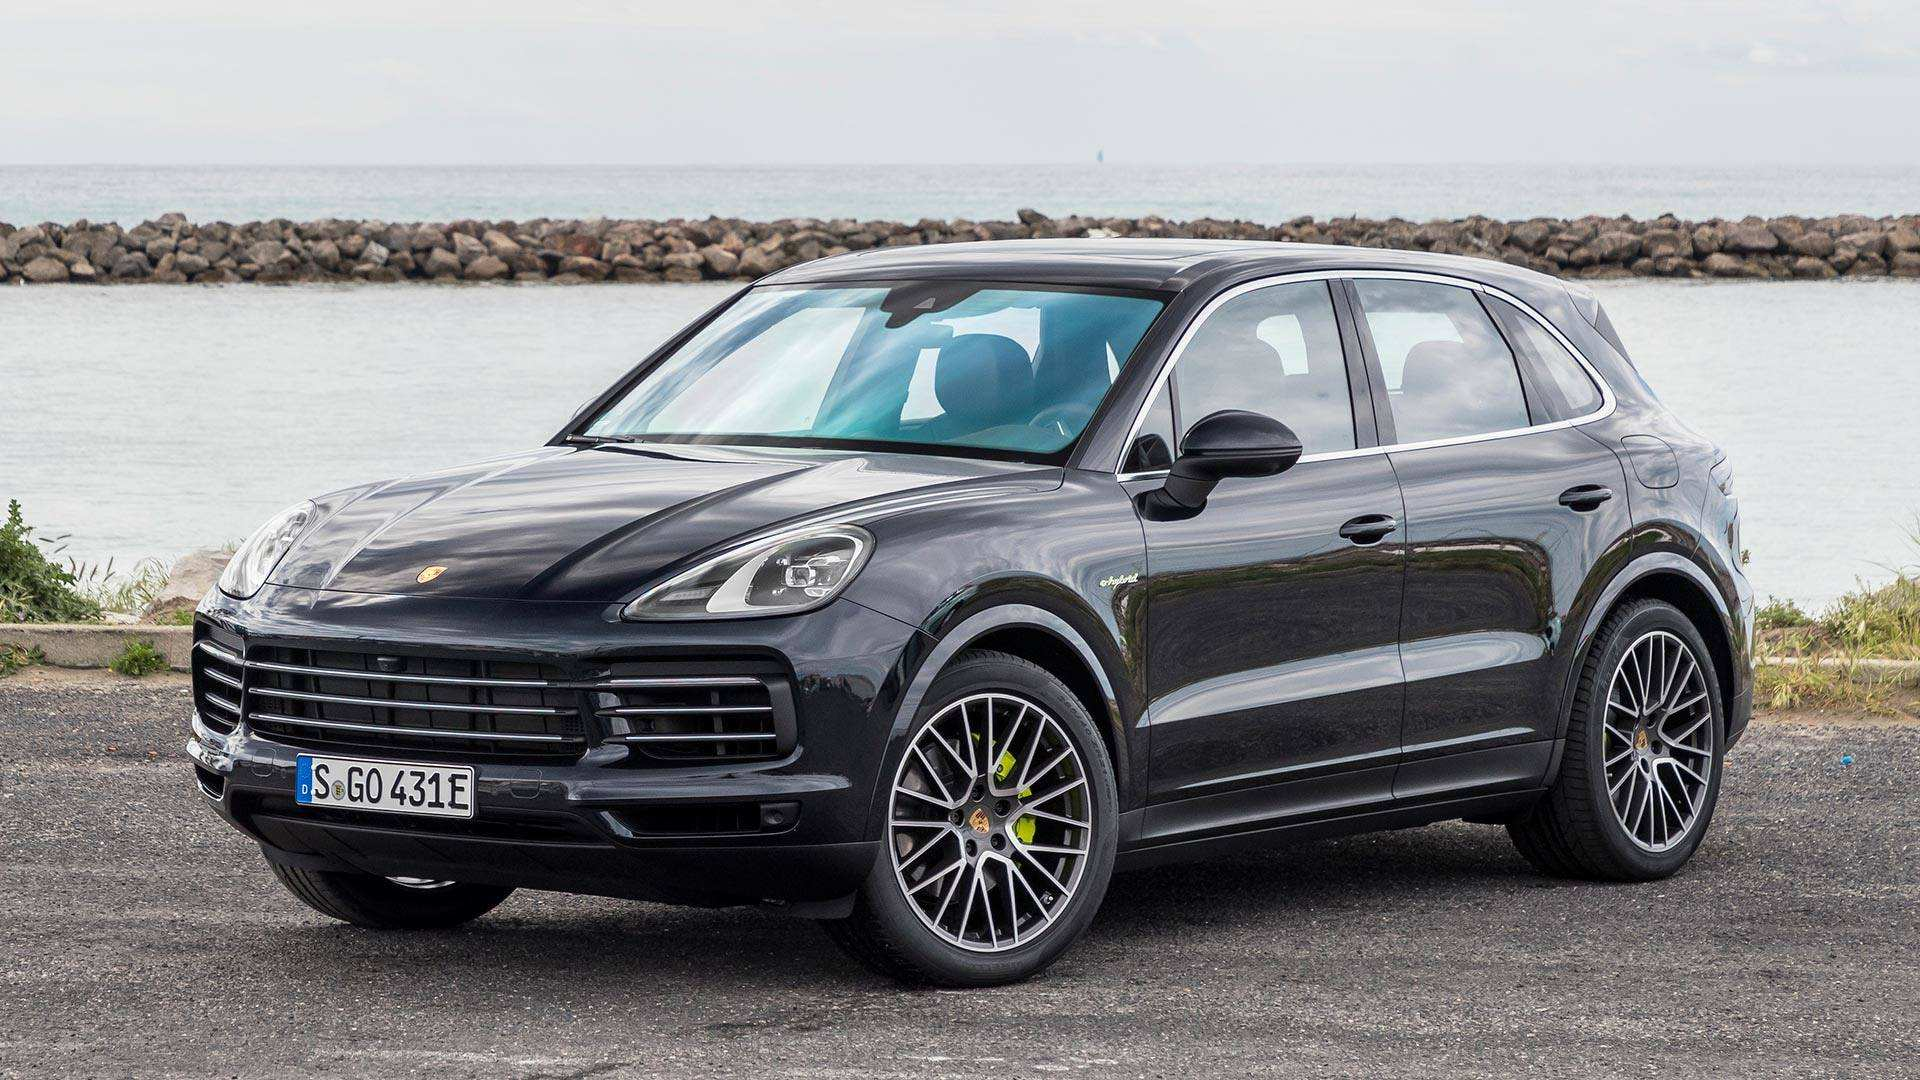 13 Great 2019 Porsche Macan Hybrid Prices for 2019 Porsche Macan Hybrid